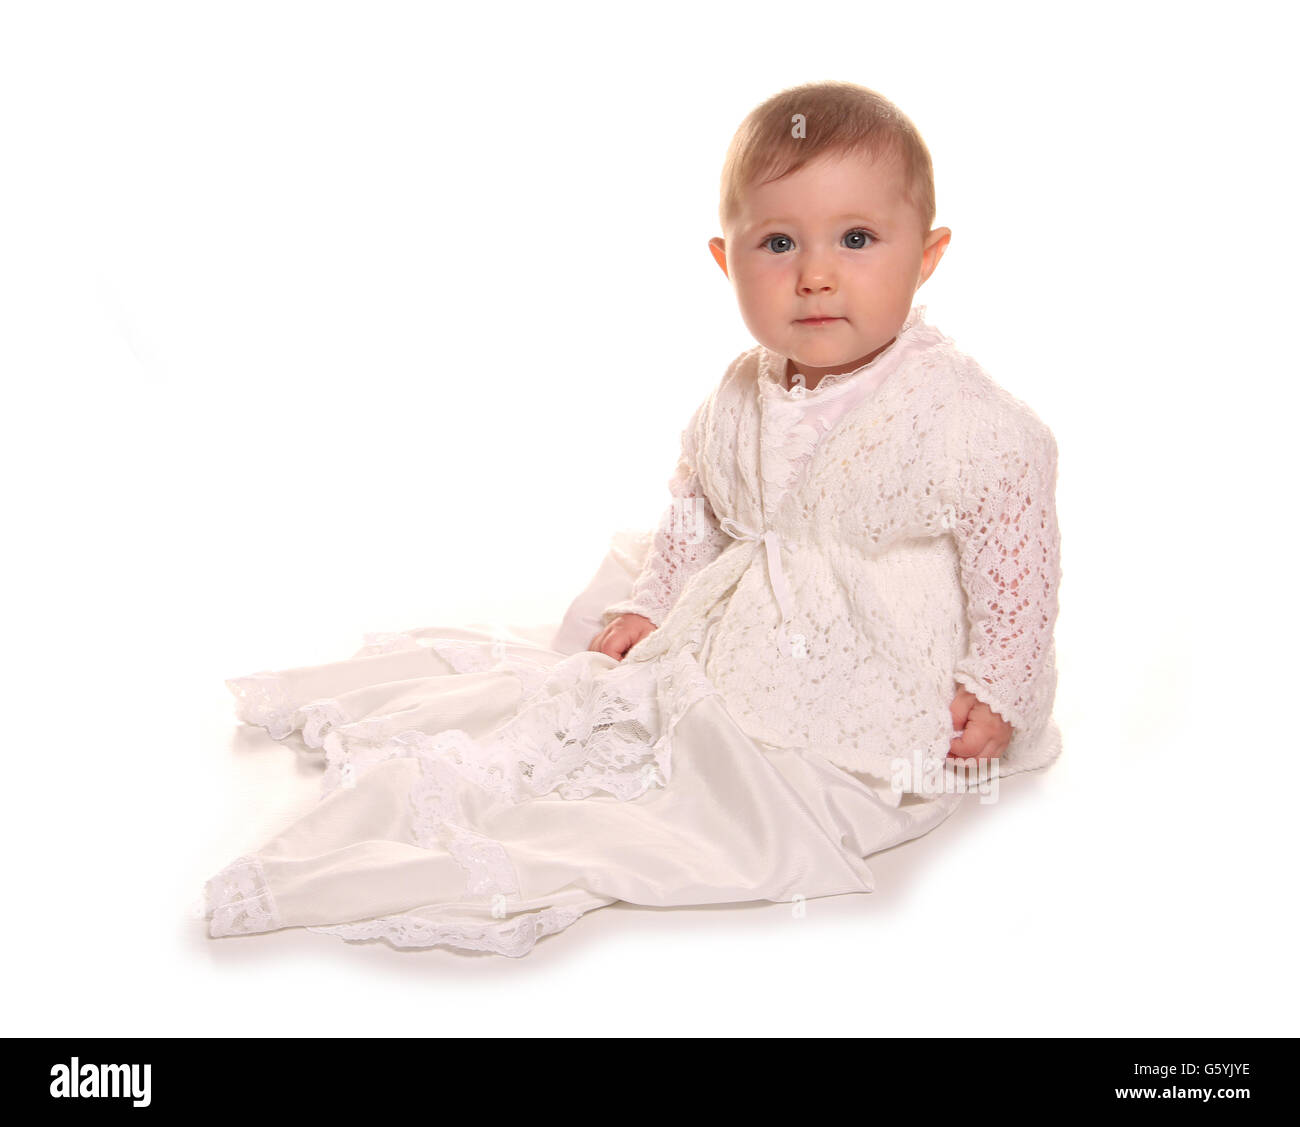 baby girl in a christening gown cutout - Stock Image